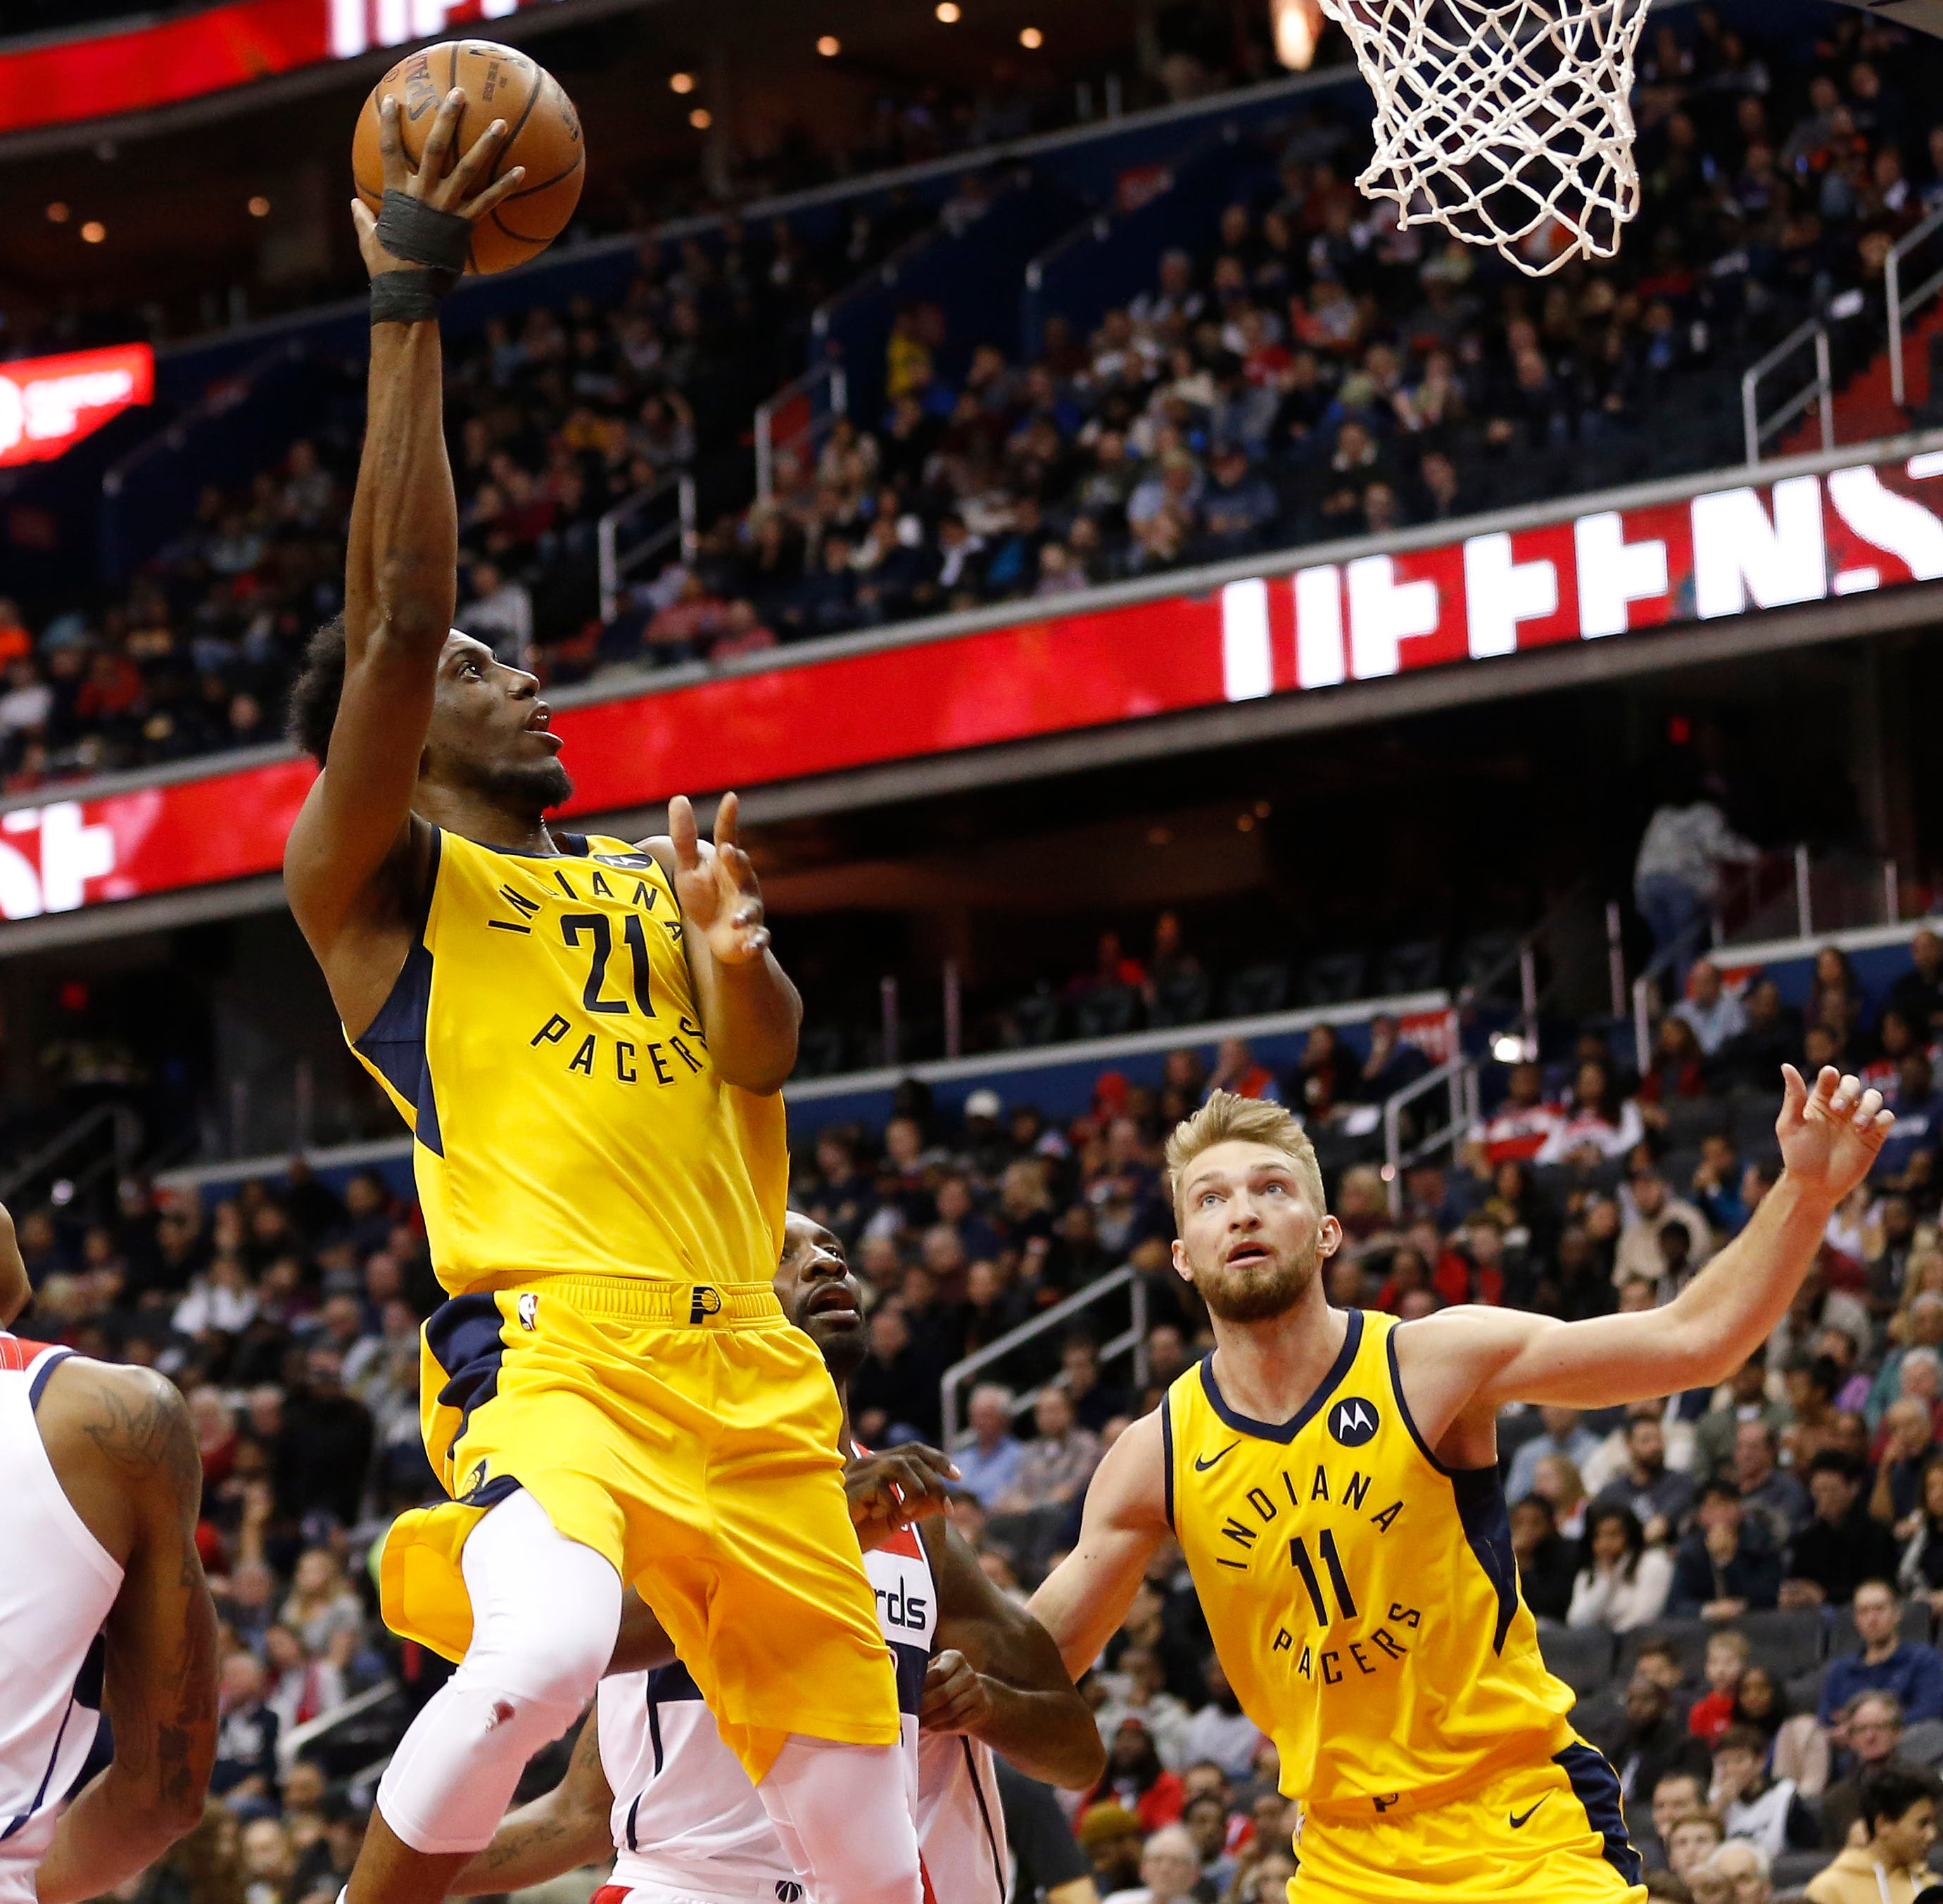 Thad Young gives his all as Pacers hold off comeback bid from Wizards to move to 40 wins